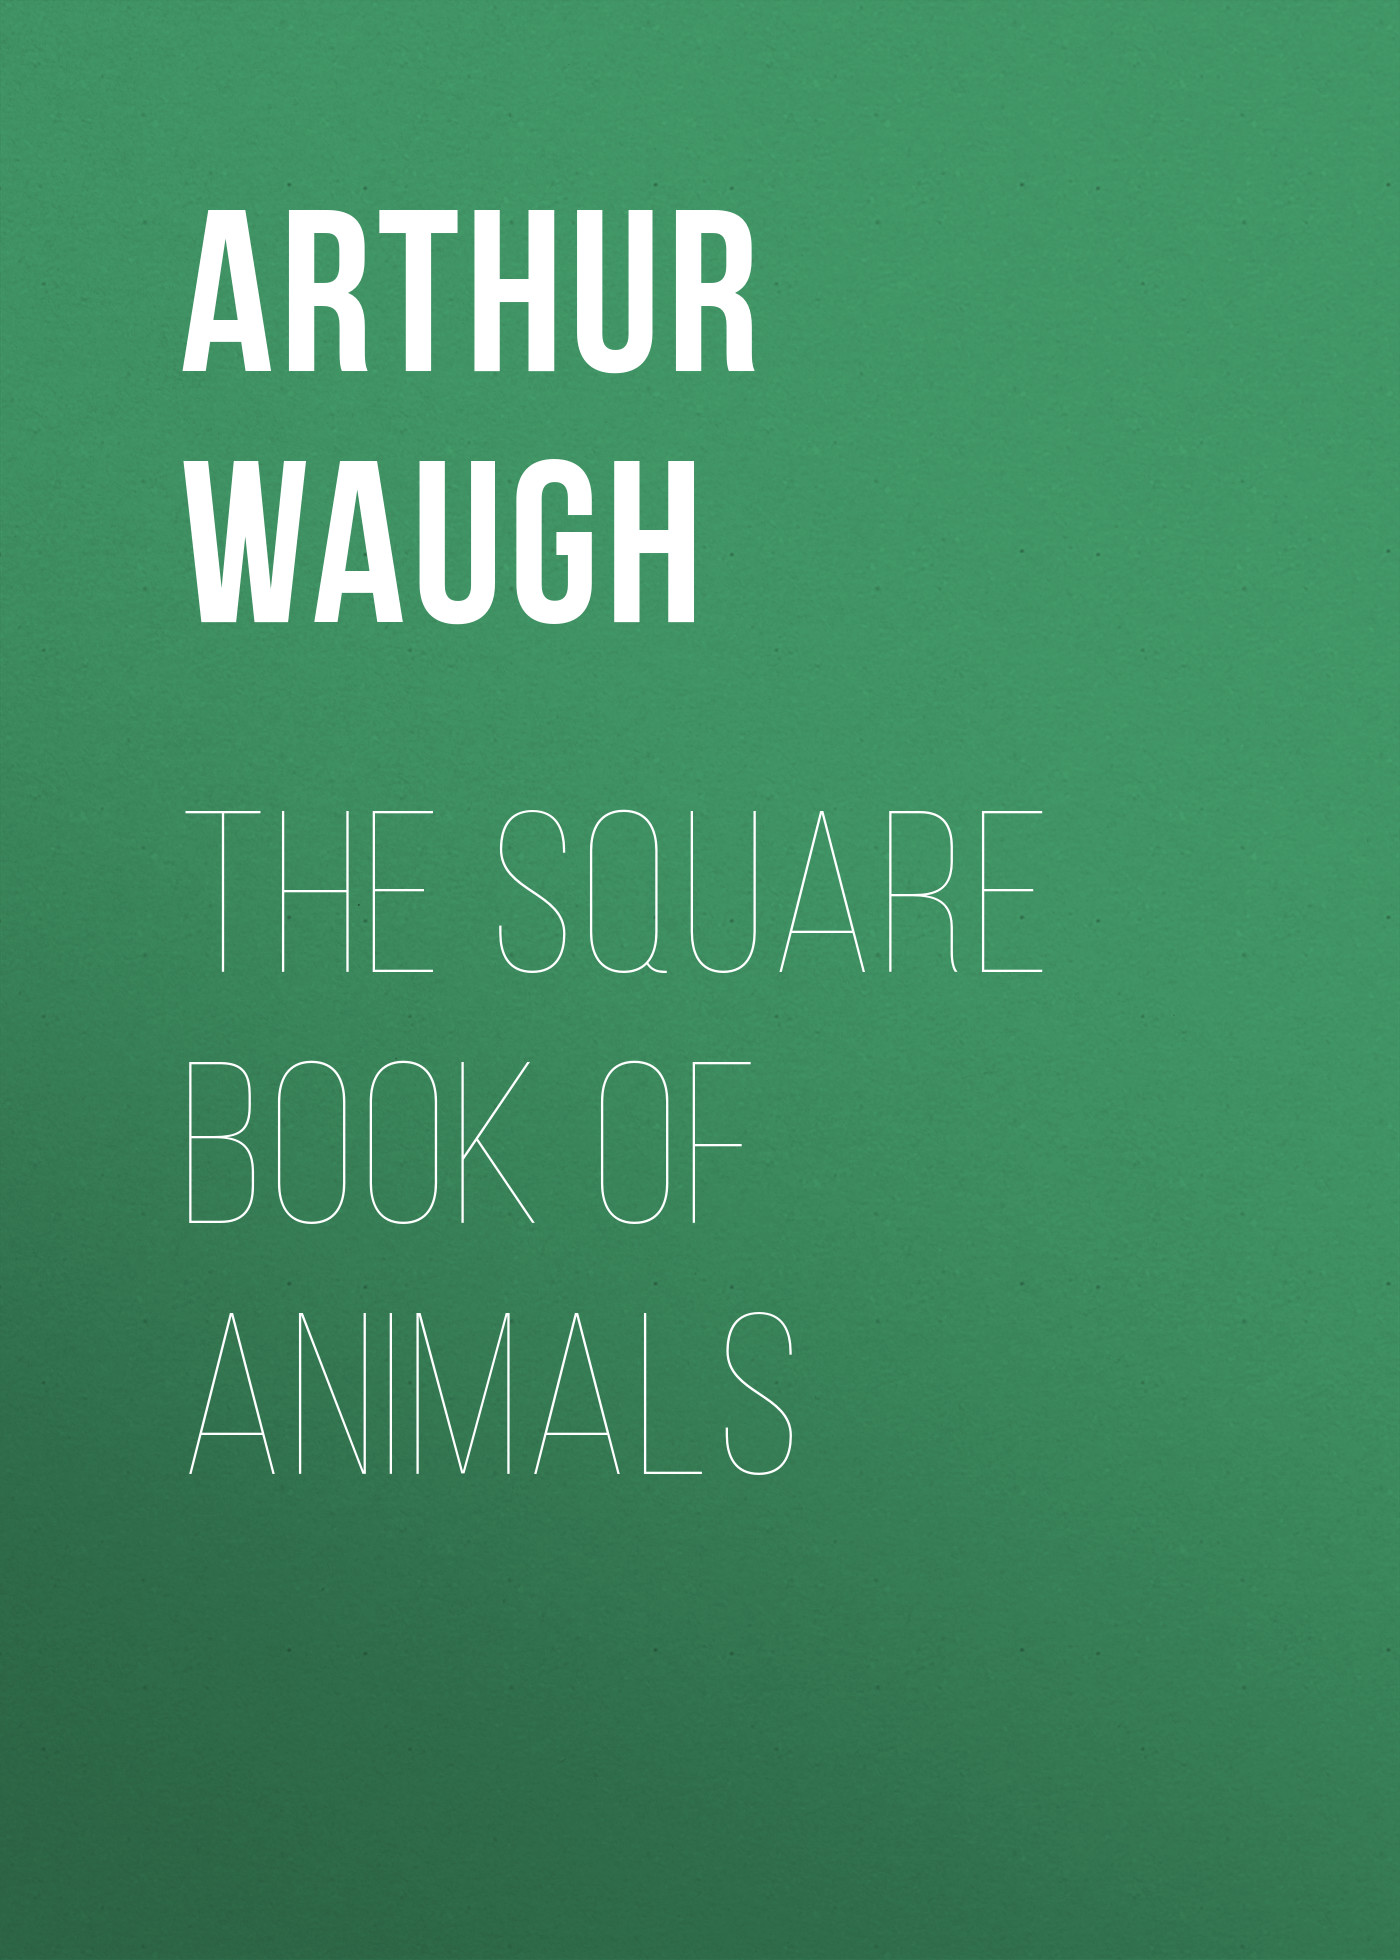 Arthur Waugh The Square Book of Animals joseph laing waugh betty grier